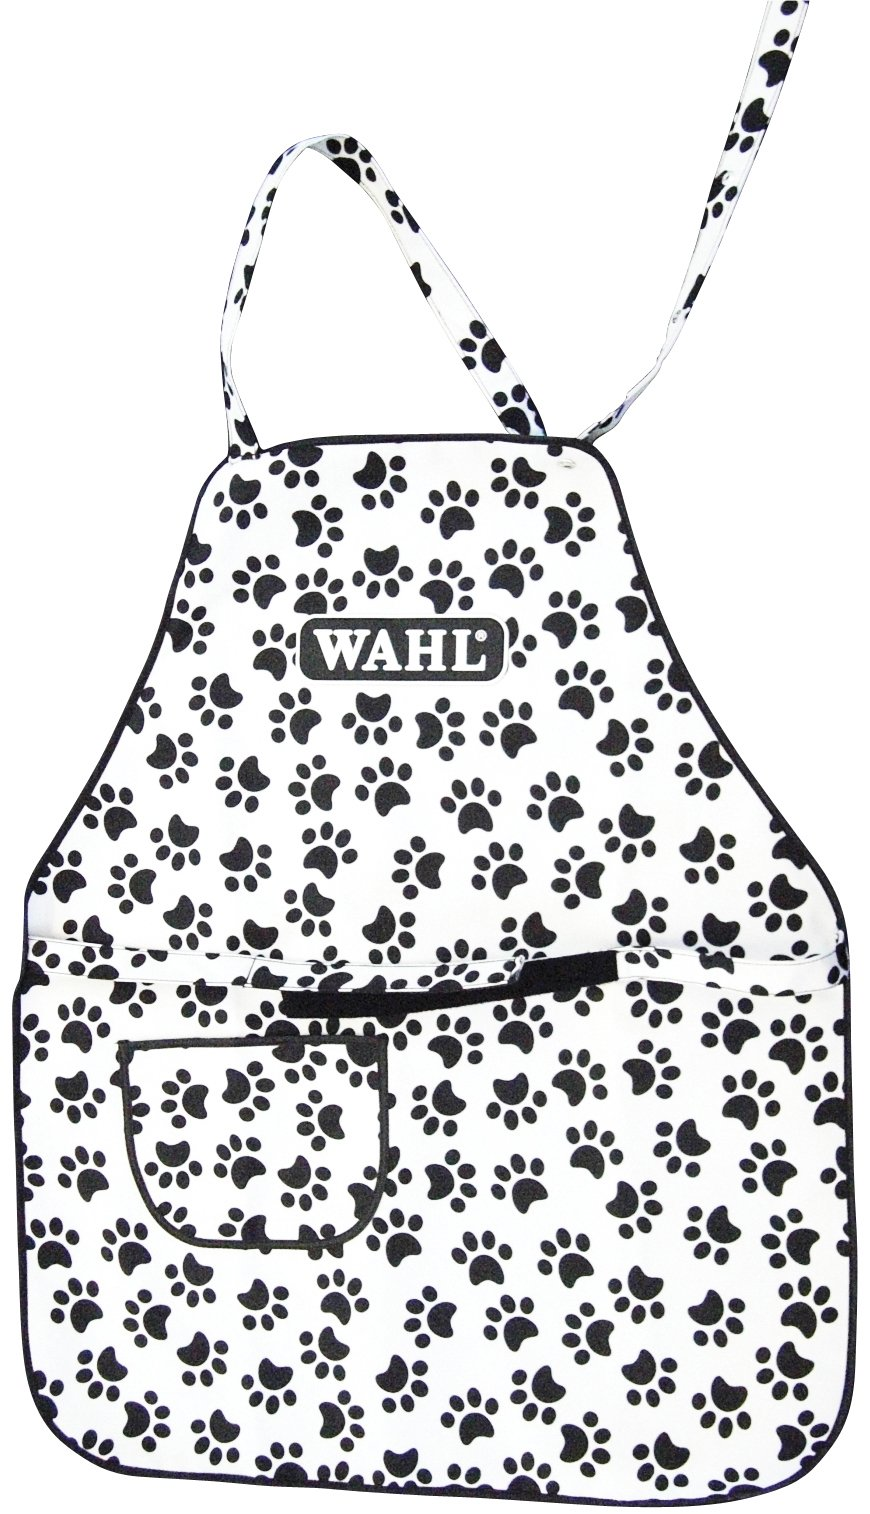 Wahl Professional Animal Paw Print Grooming Apron #97780-001